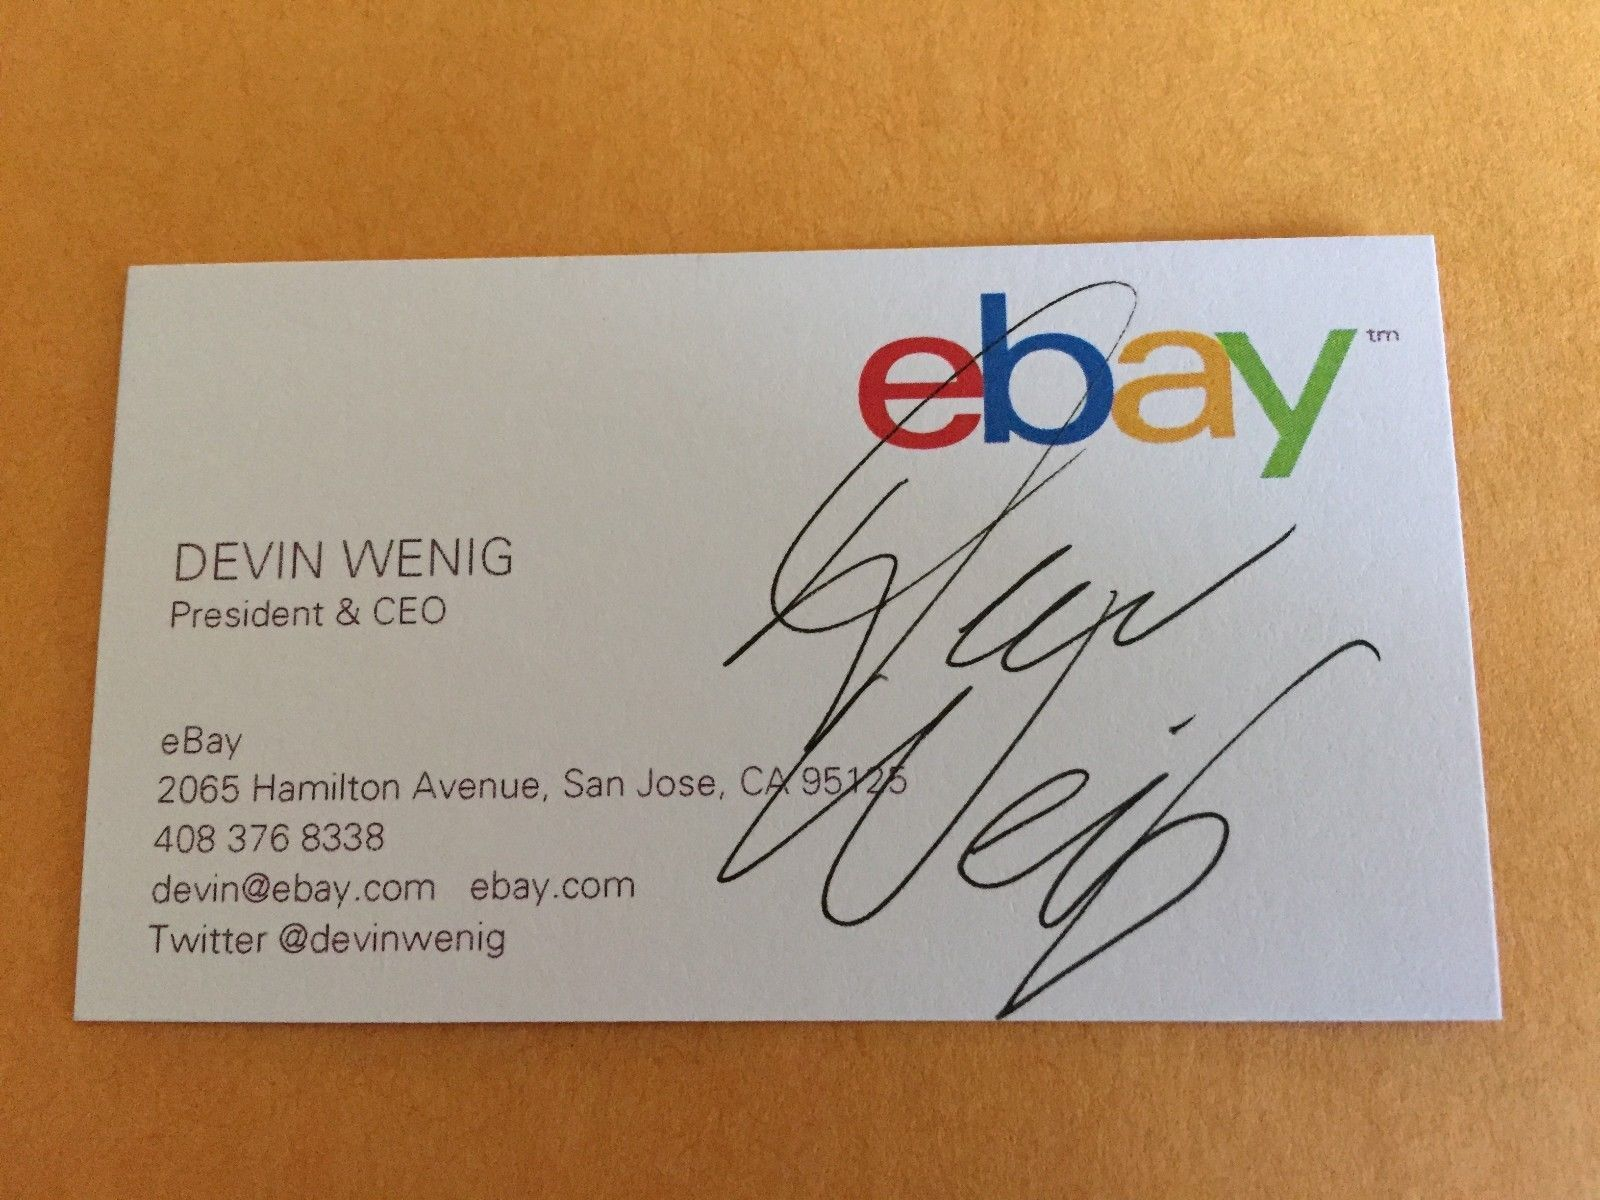 Devin wenig autograph ebay president ceo business card signed devin wenig autograph ebay president ceo business card signed colourmoves